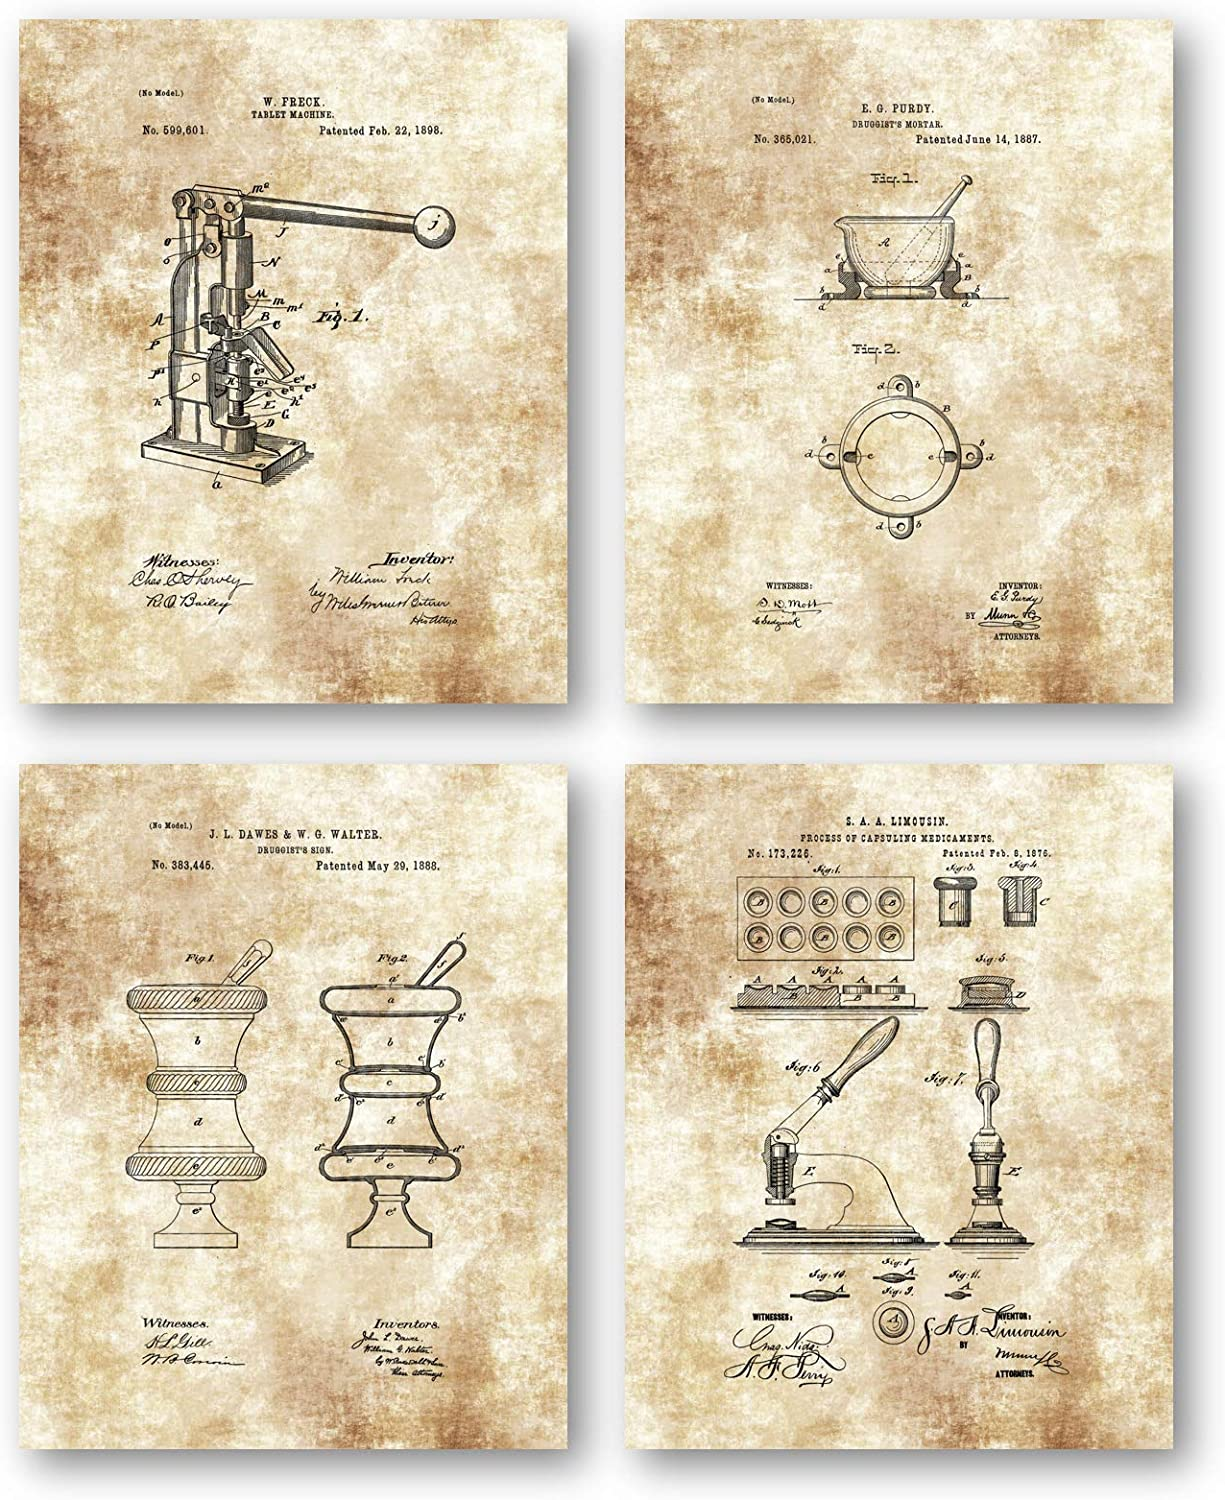 Original Pharmacist Drawings Artwork - Set of 4 8 x 10 Unframed Patent Prints - Great Gift for Pharmacology Student and Pharmaceutical Representatives - Vintage Home Office or Pharmacy Decor